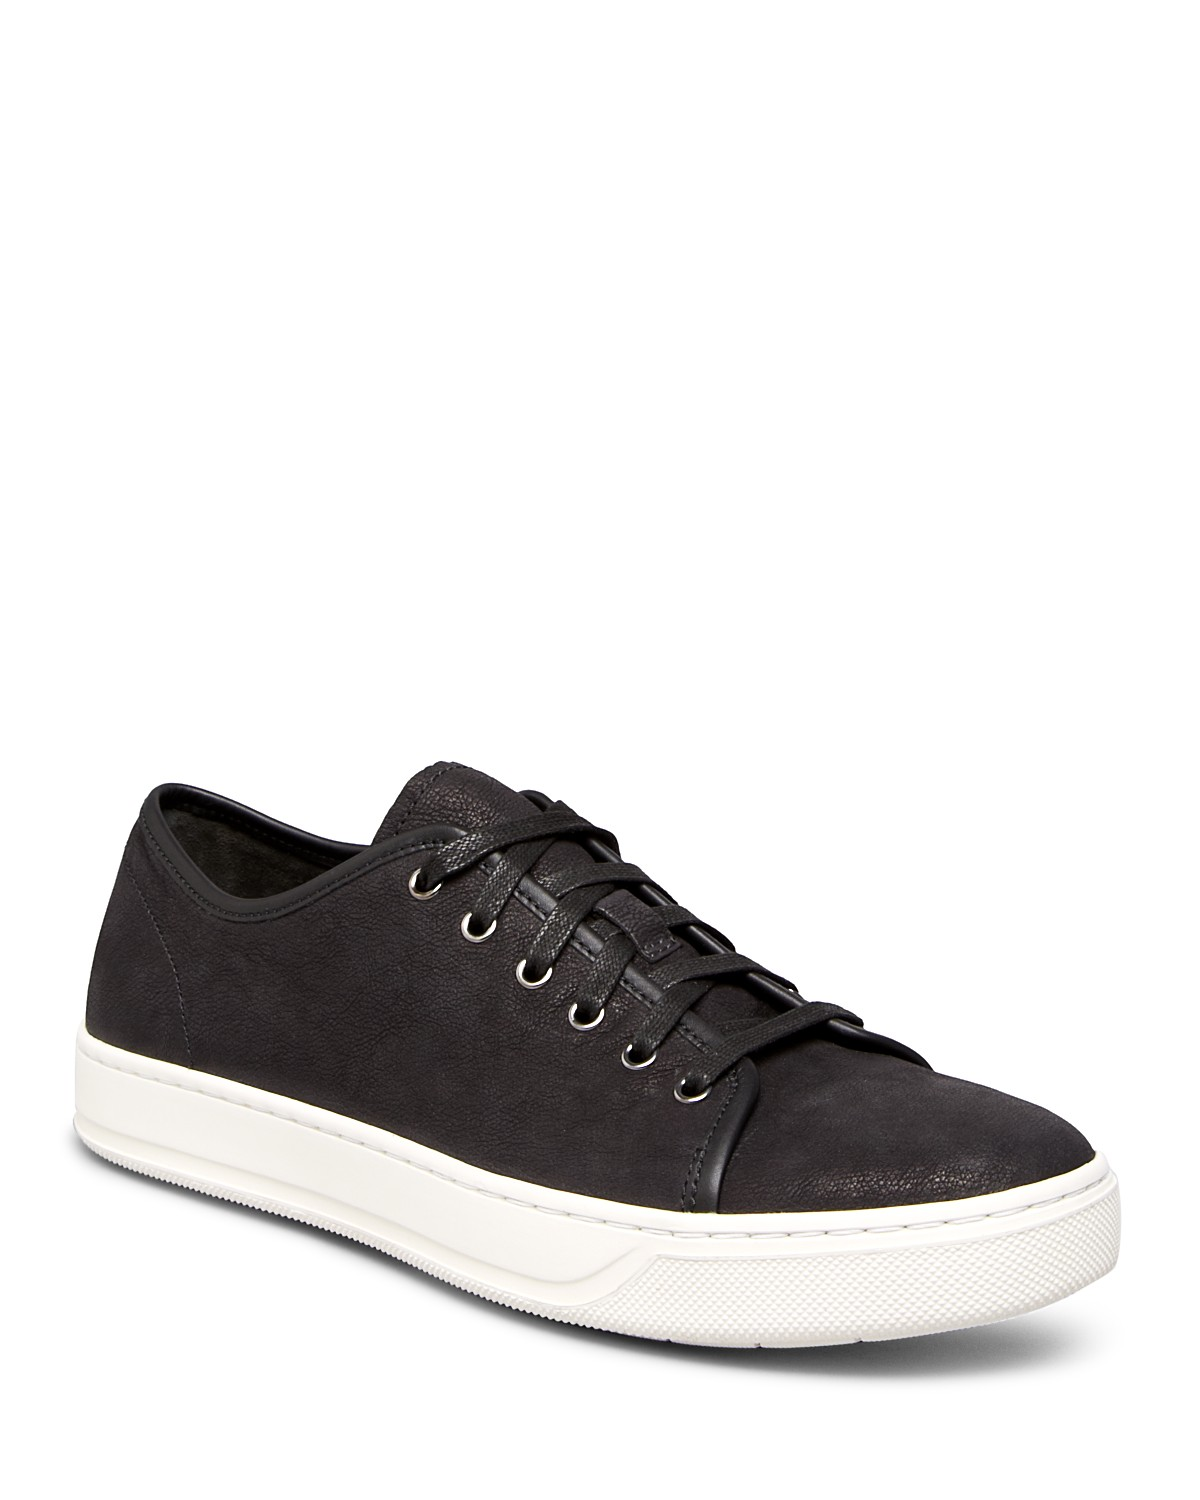 Vince Austin Washed Nubuck Lace Up Sneakers mDADRS